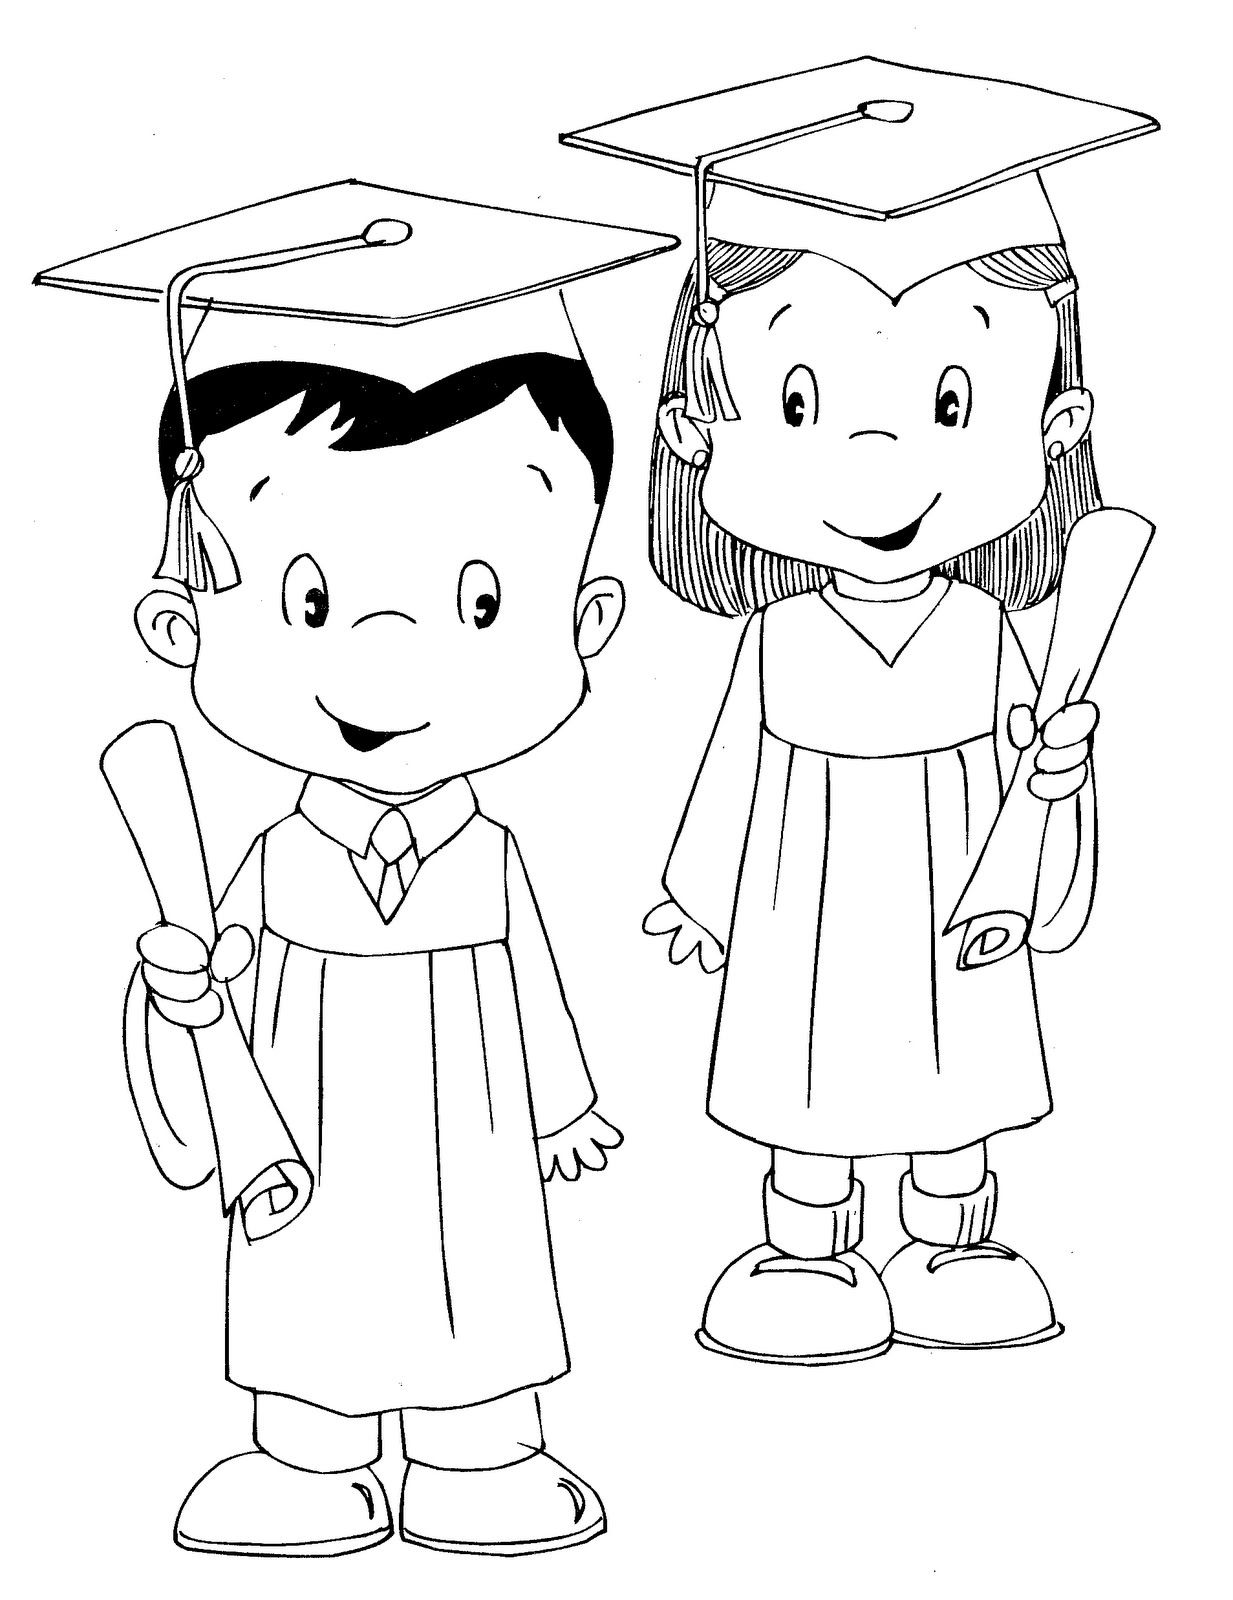 Coloring pages for kindergarten graduation - Free Printable Coloring Pages For Print And Color Coloring Page To Print Free Printable Coloring Book Pages For Kid Printable Coloring Worksheet